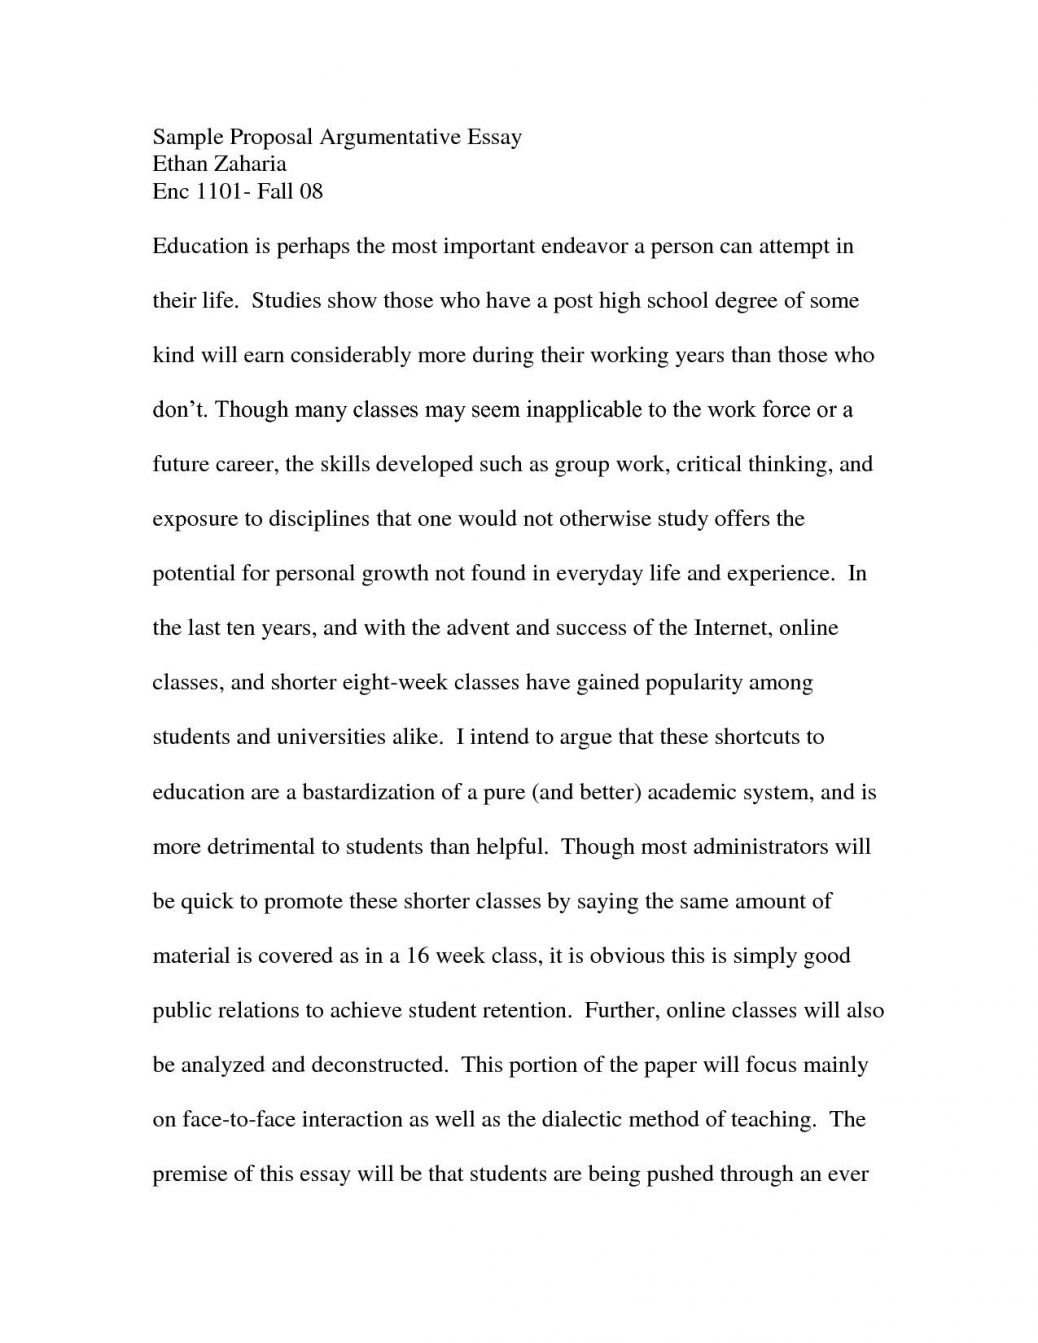 014 Example Ofmentative Research Paper Good Essay Tremendous Image Ideas Template Awesome Collection High School Sample 1038x1343 Fearsome For Papers Topic Full